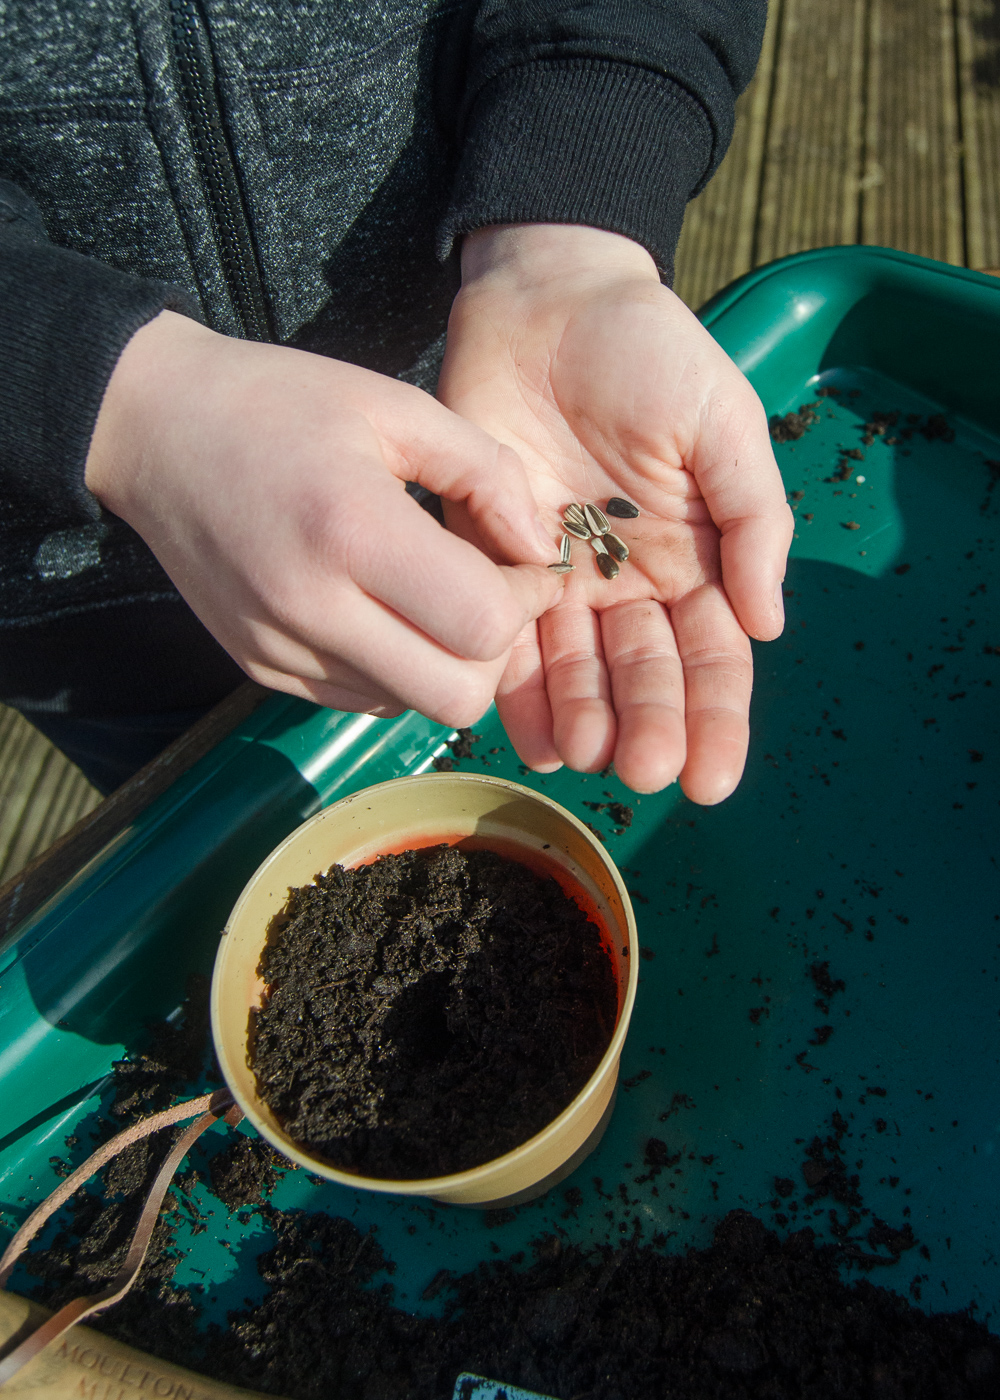 things to do in the garden when stuck at home with the kids - planting sunflowers